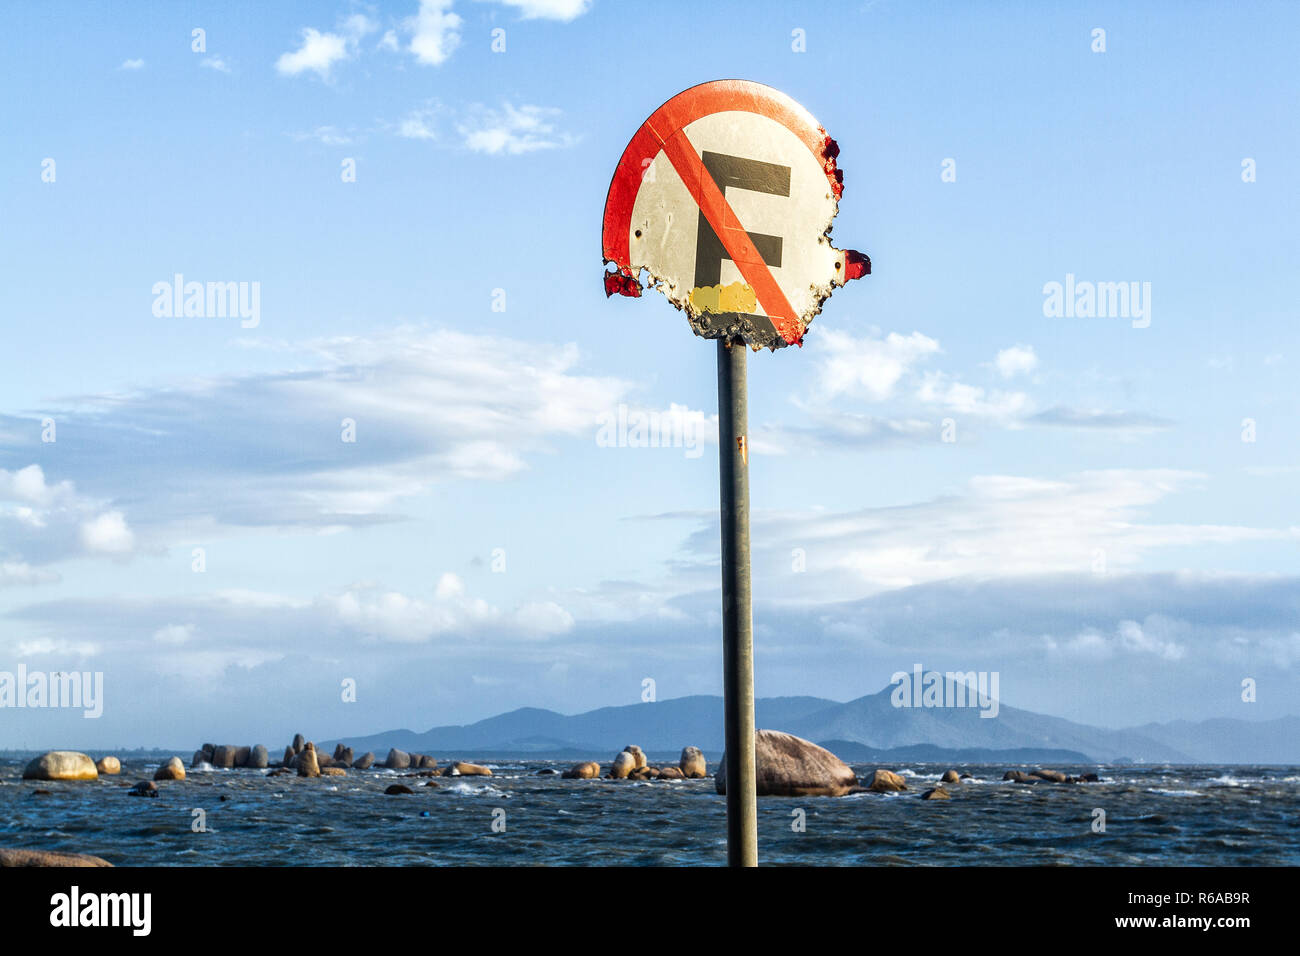 No parking sign corroded by sea air. Florianopolis, Santa Catarina, Brazil. - Stock Image